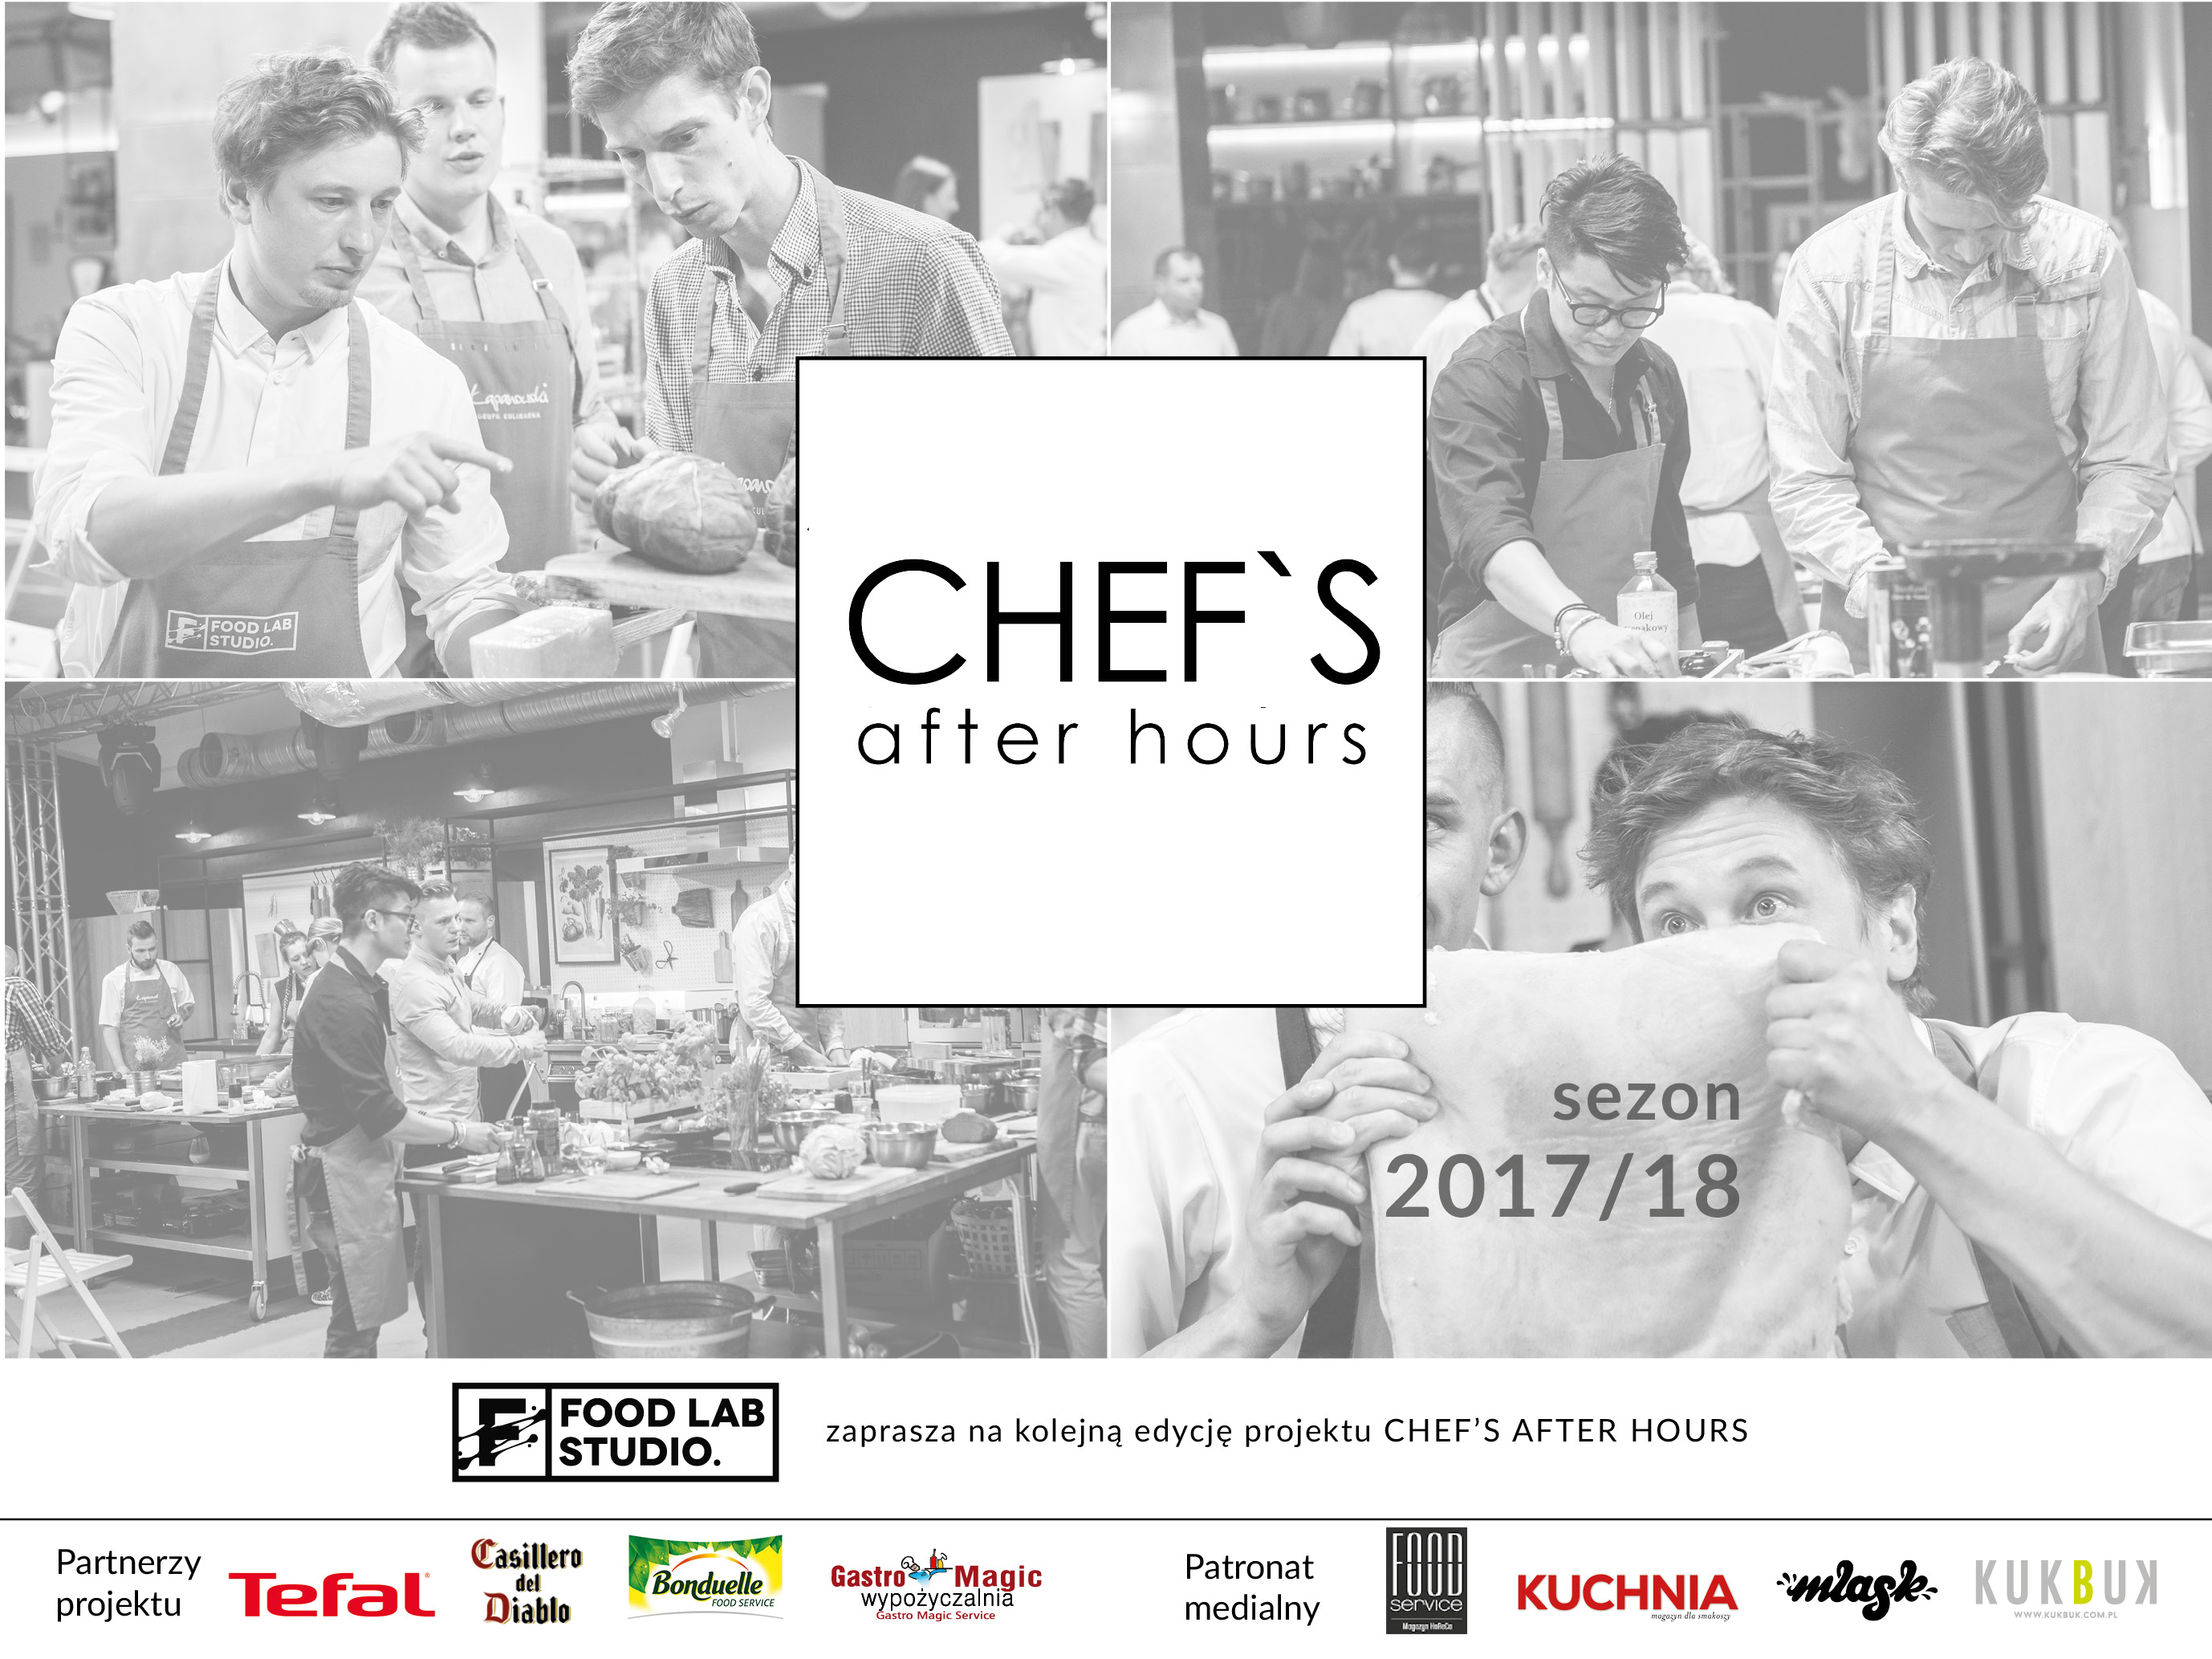 Chef's after hours